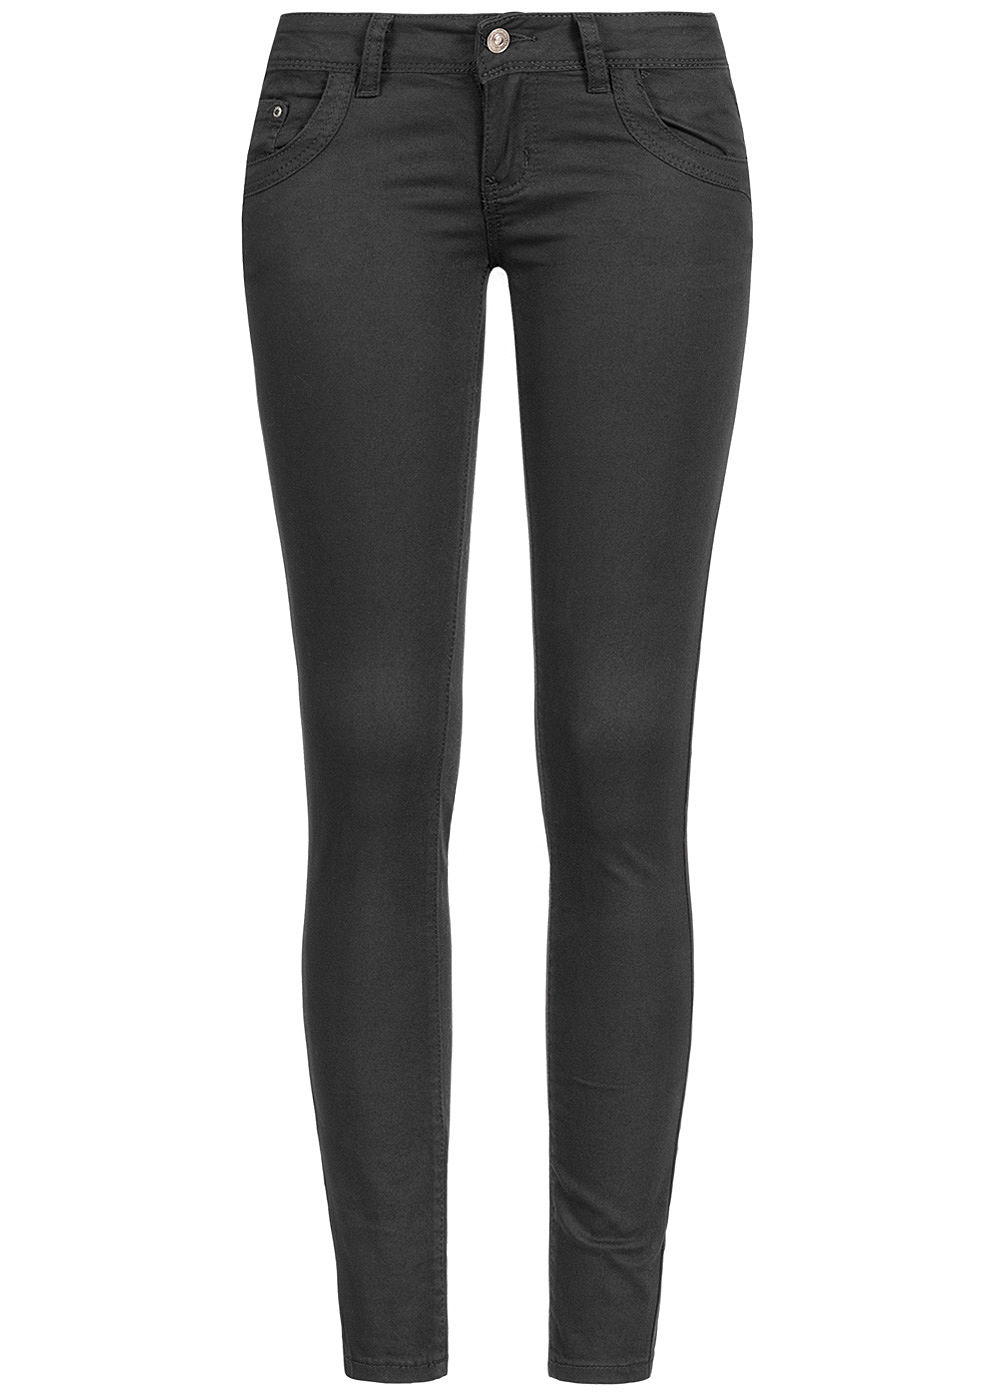 Seventyseven Lifestyle Damen Skinny Jeans 5-Pockets Low Waist schwarz denim - Art.-Nr.: 19127095